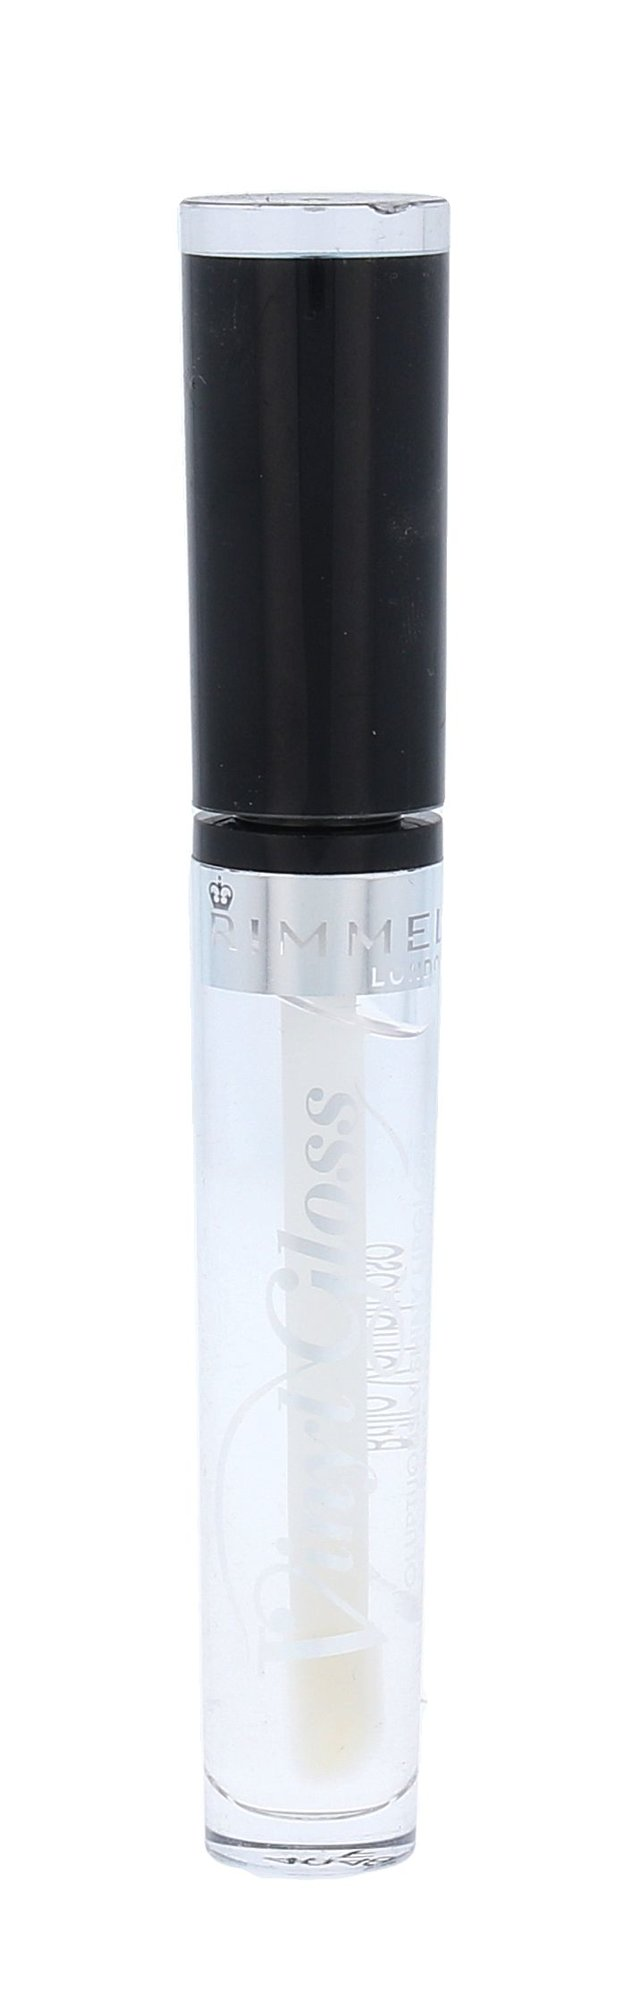 Rimmel London Vinyl Gloss Cosmetic 6ml 800 Crystal Clear